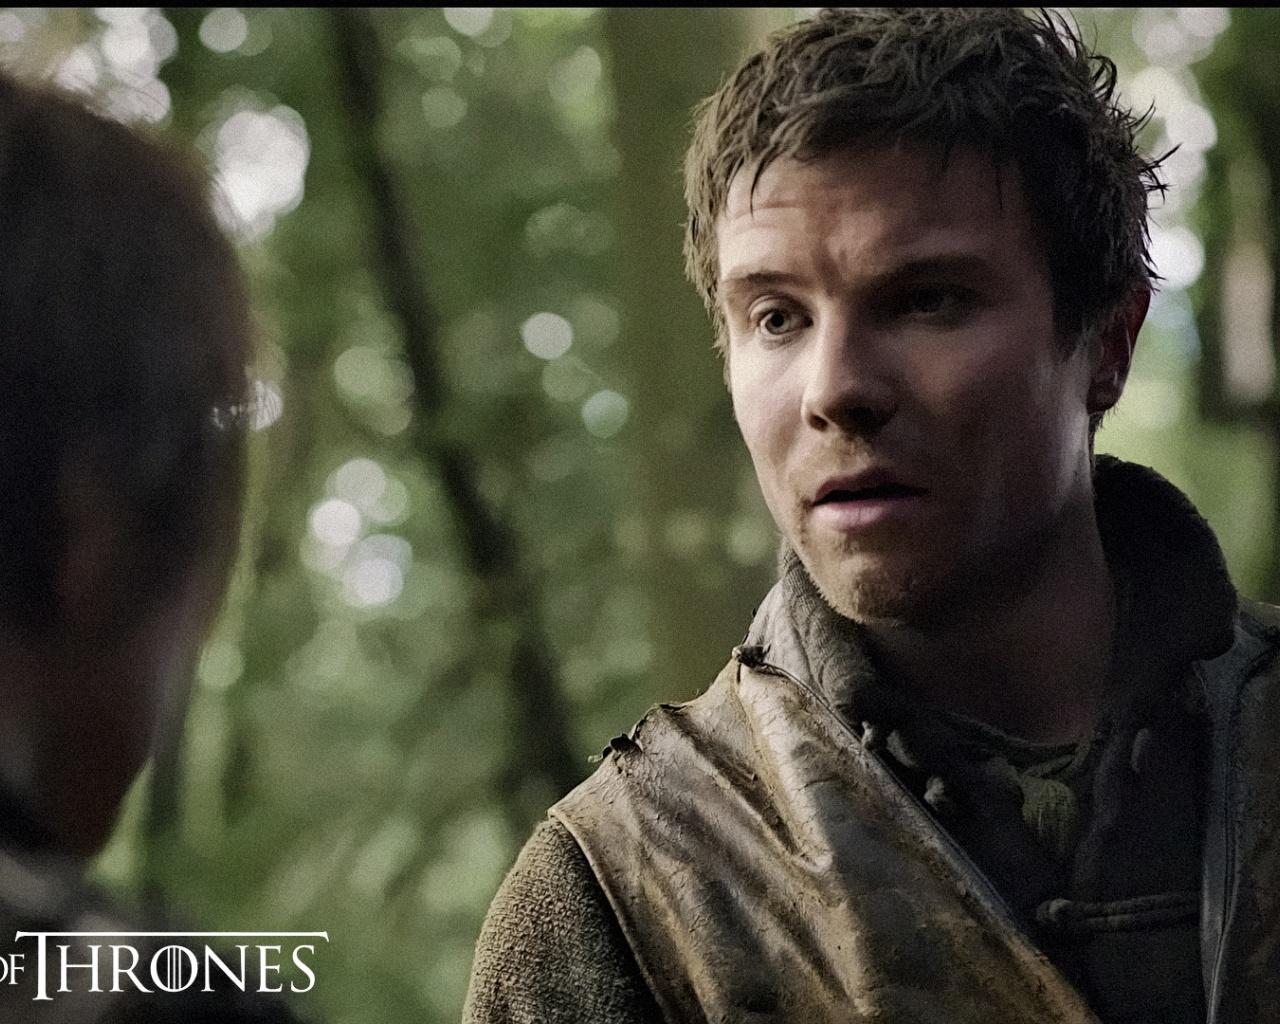 1280x1024 Gendry Game of Thrones desktop PC and Mac wallpaper 1280x1024